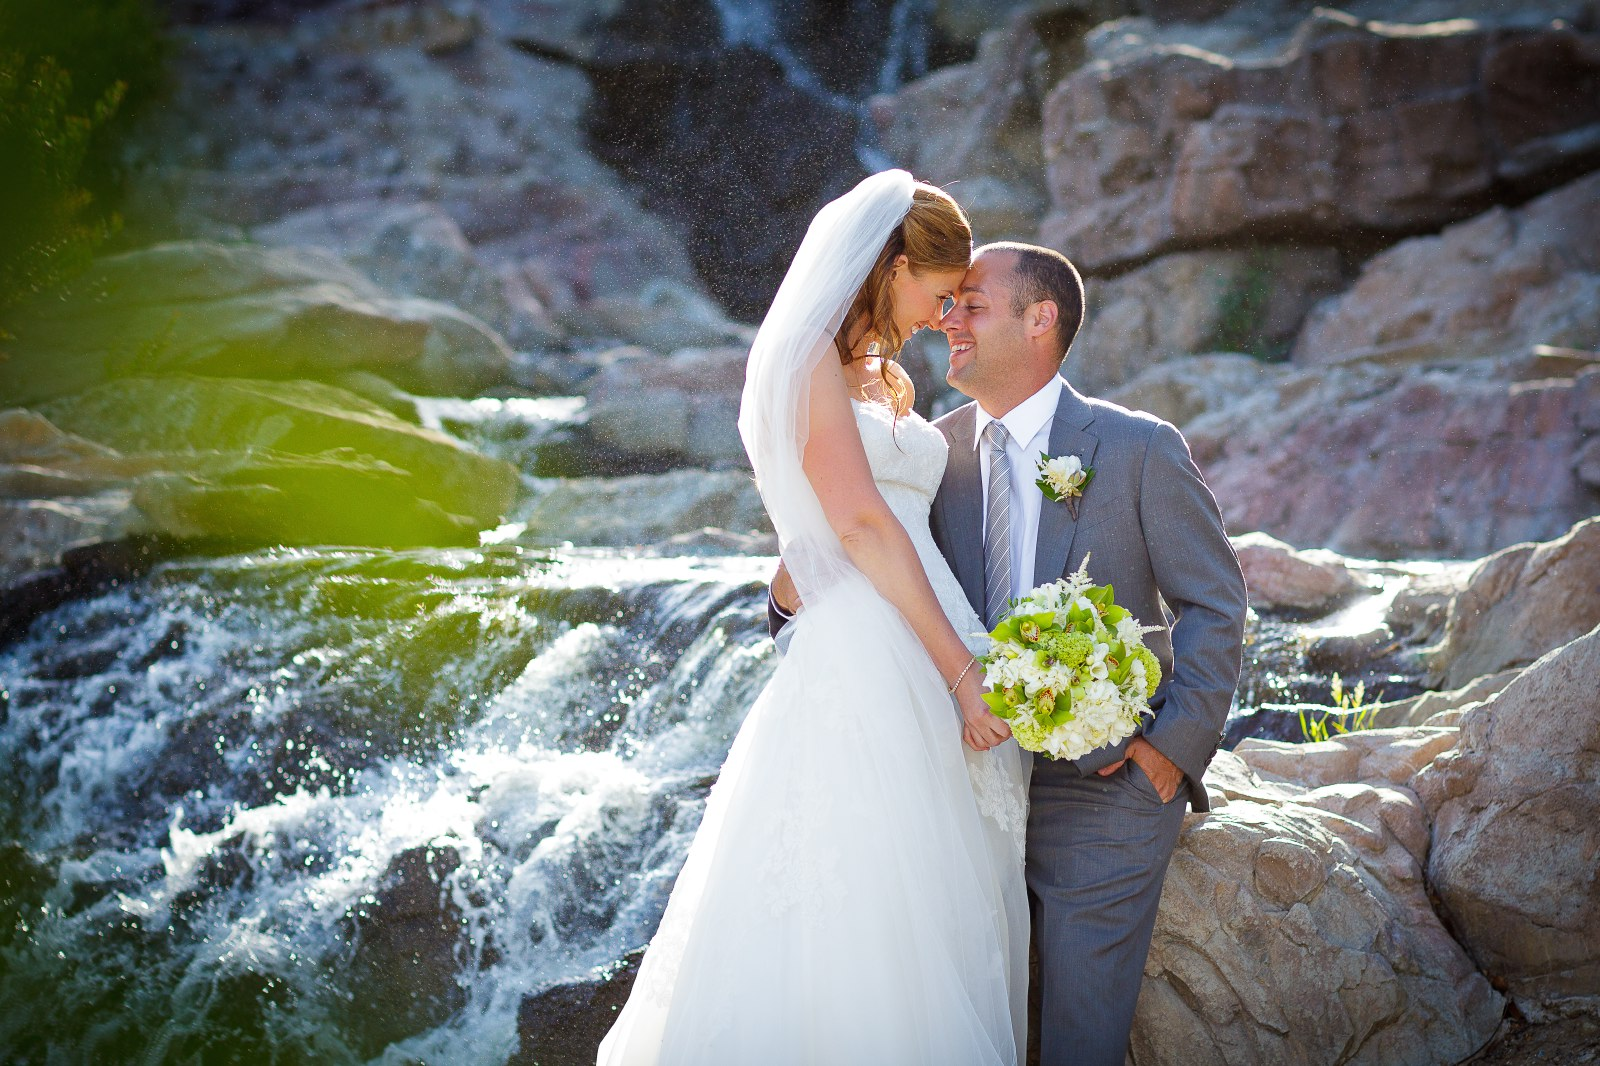 waterfall-at-dove-canyon-with-bride-and-groom-